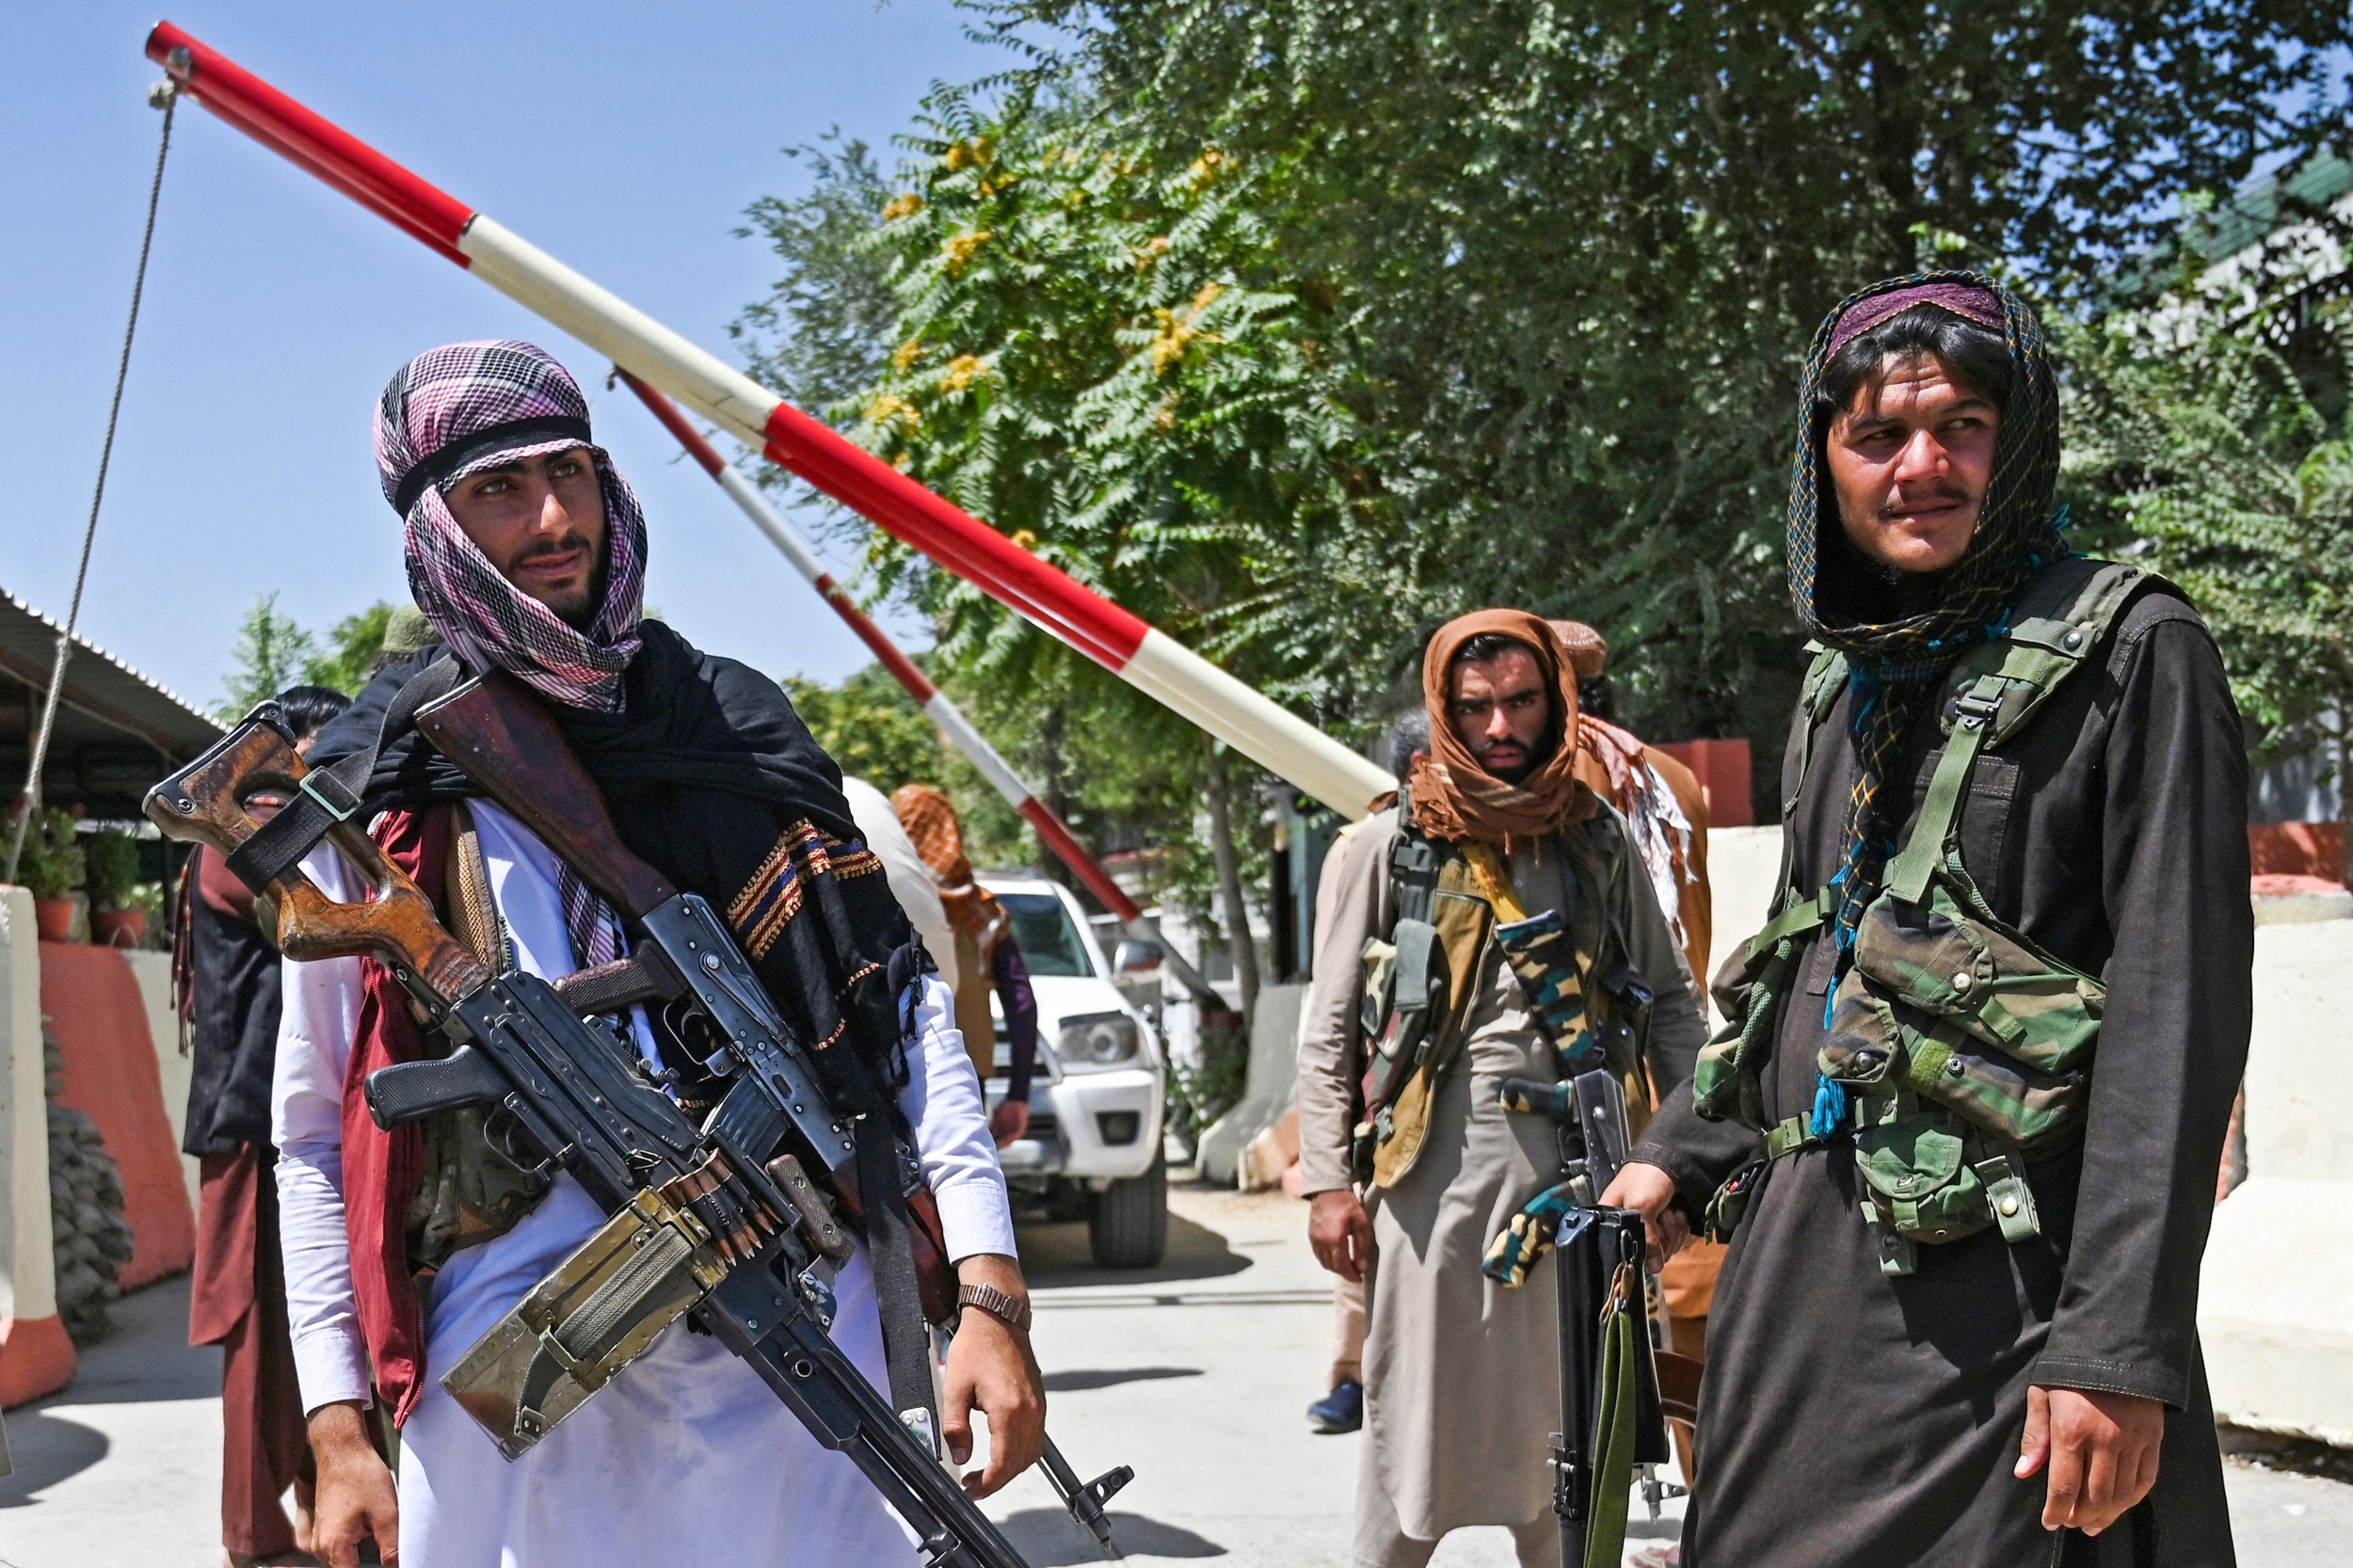 Taliban spokesman congratulates Afghanistan for expelling 'foreigners'